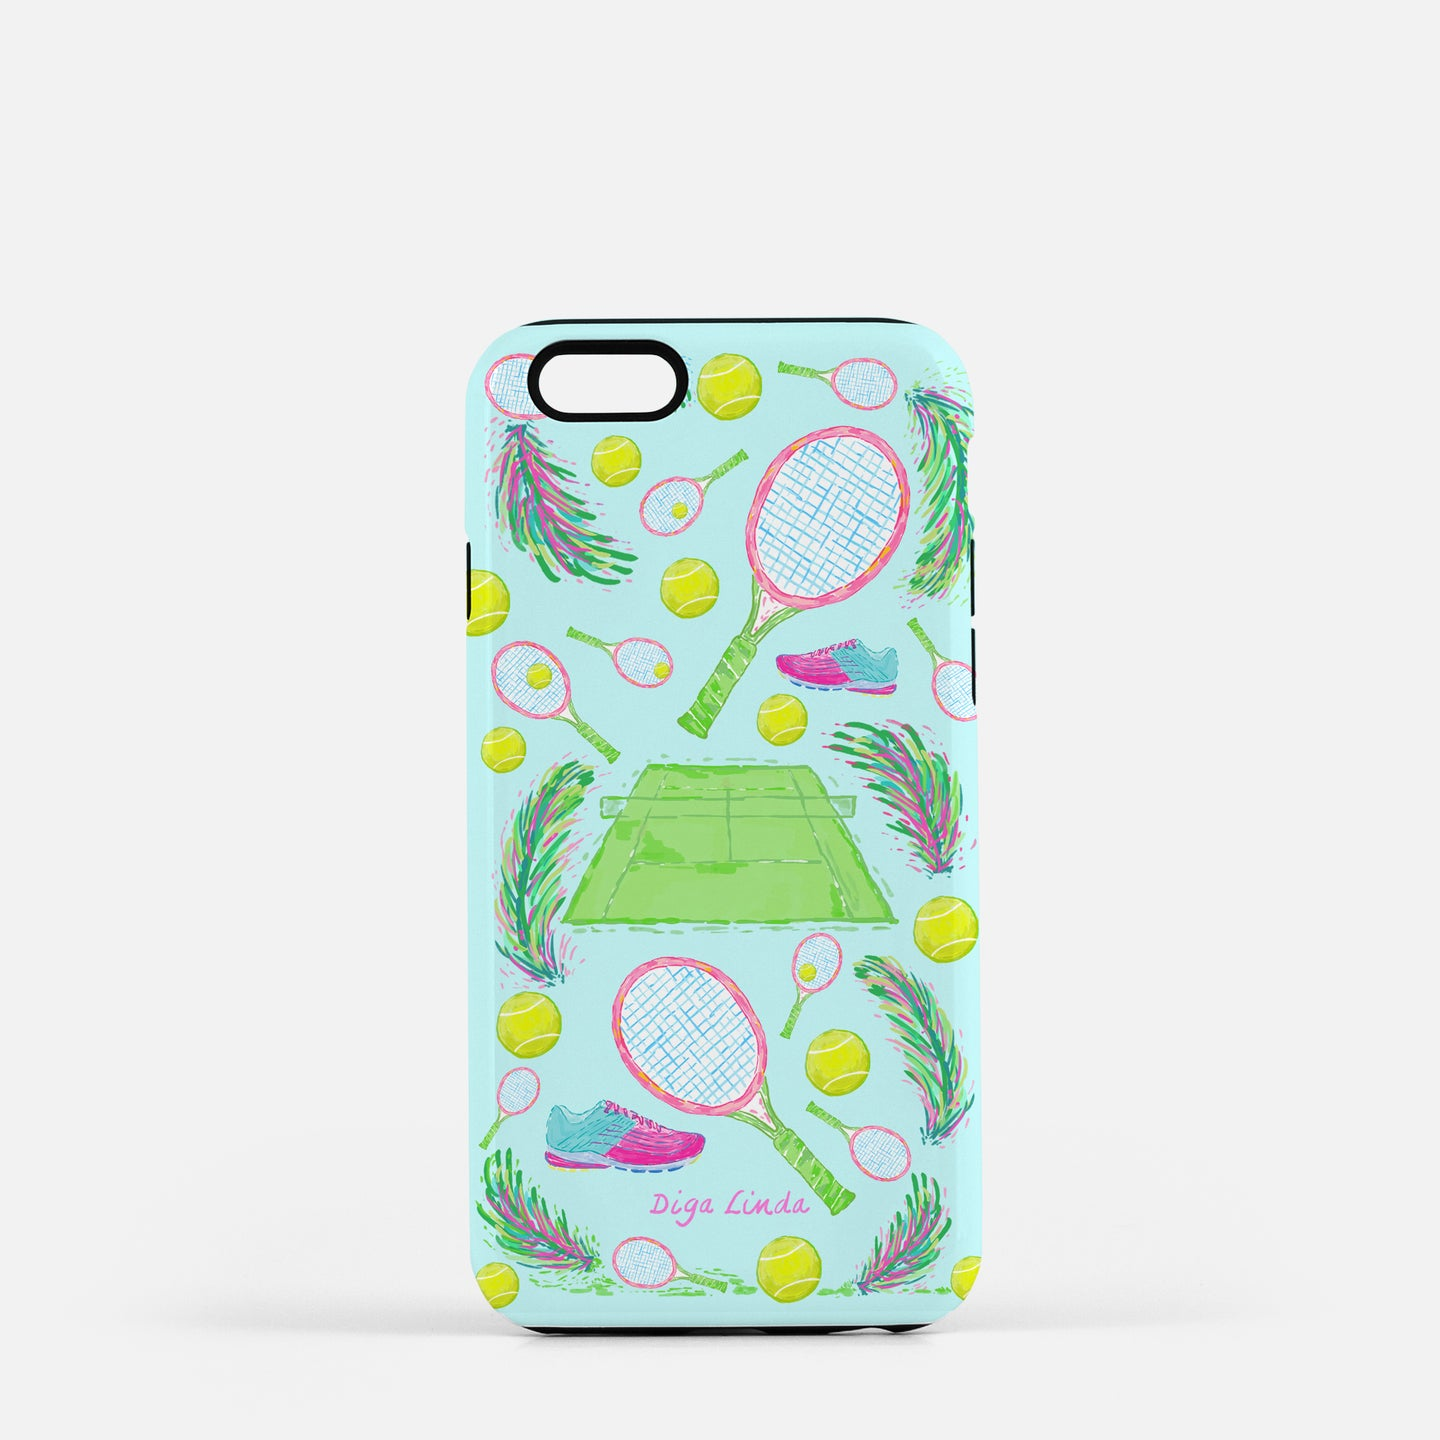 Tough Phone Case in the Tennis Blue Skies Print - Diga Linda